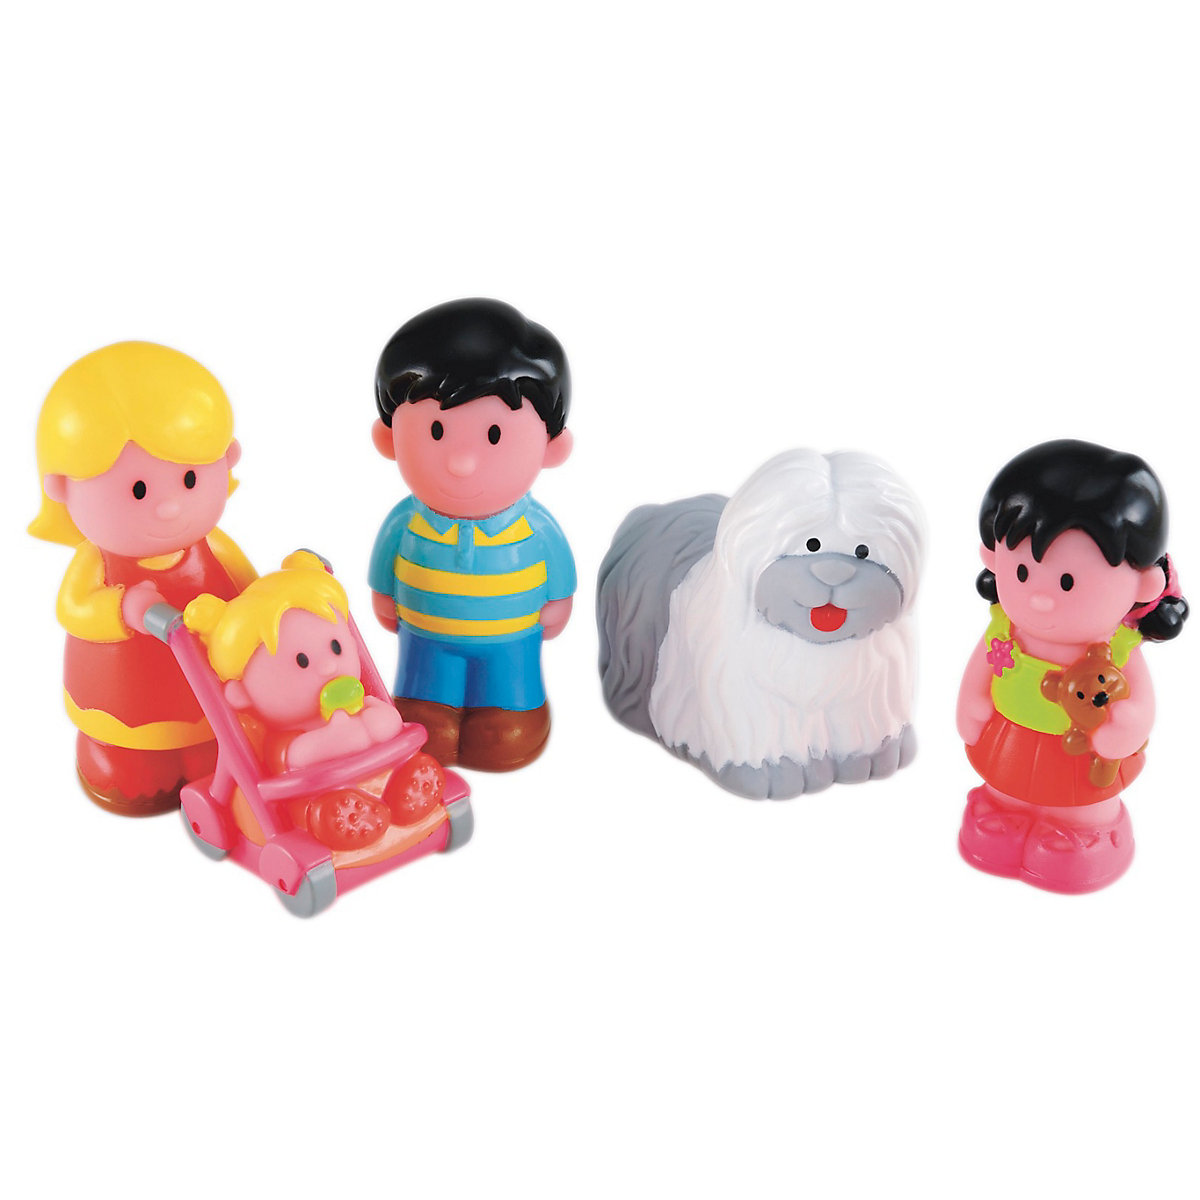 New ELC Boys and Girls Happyland Happy Family Toy From 18 months - Toddler Gifts